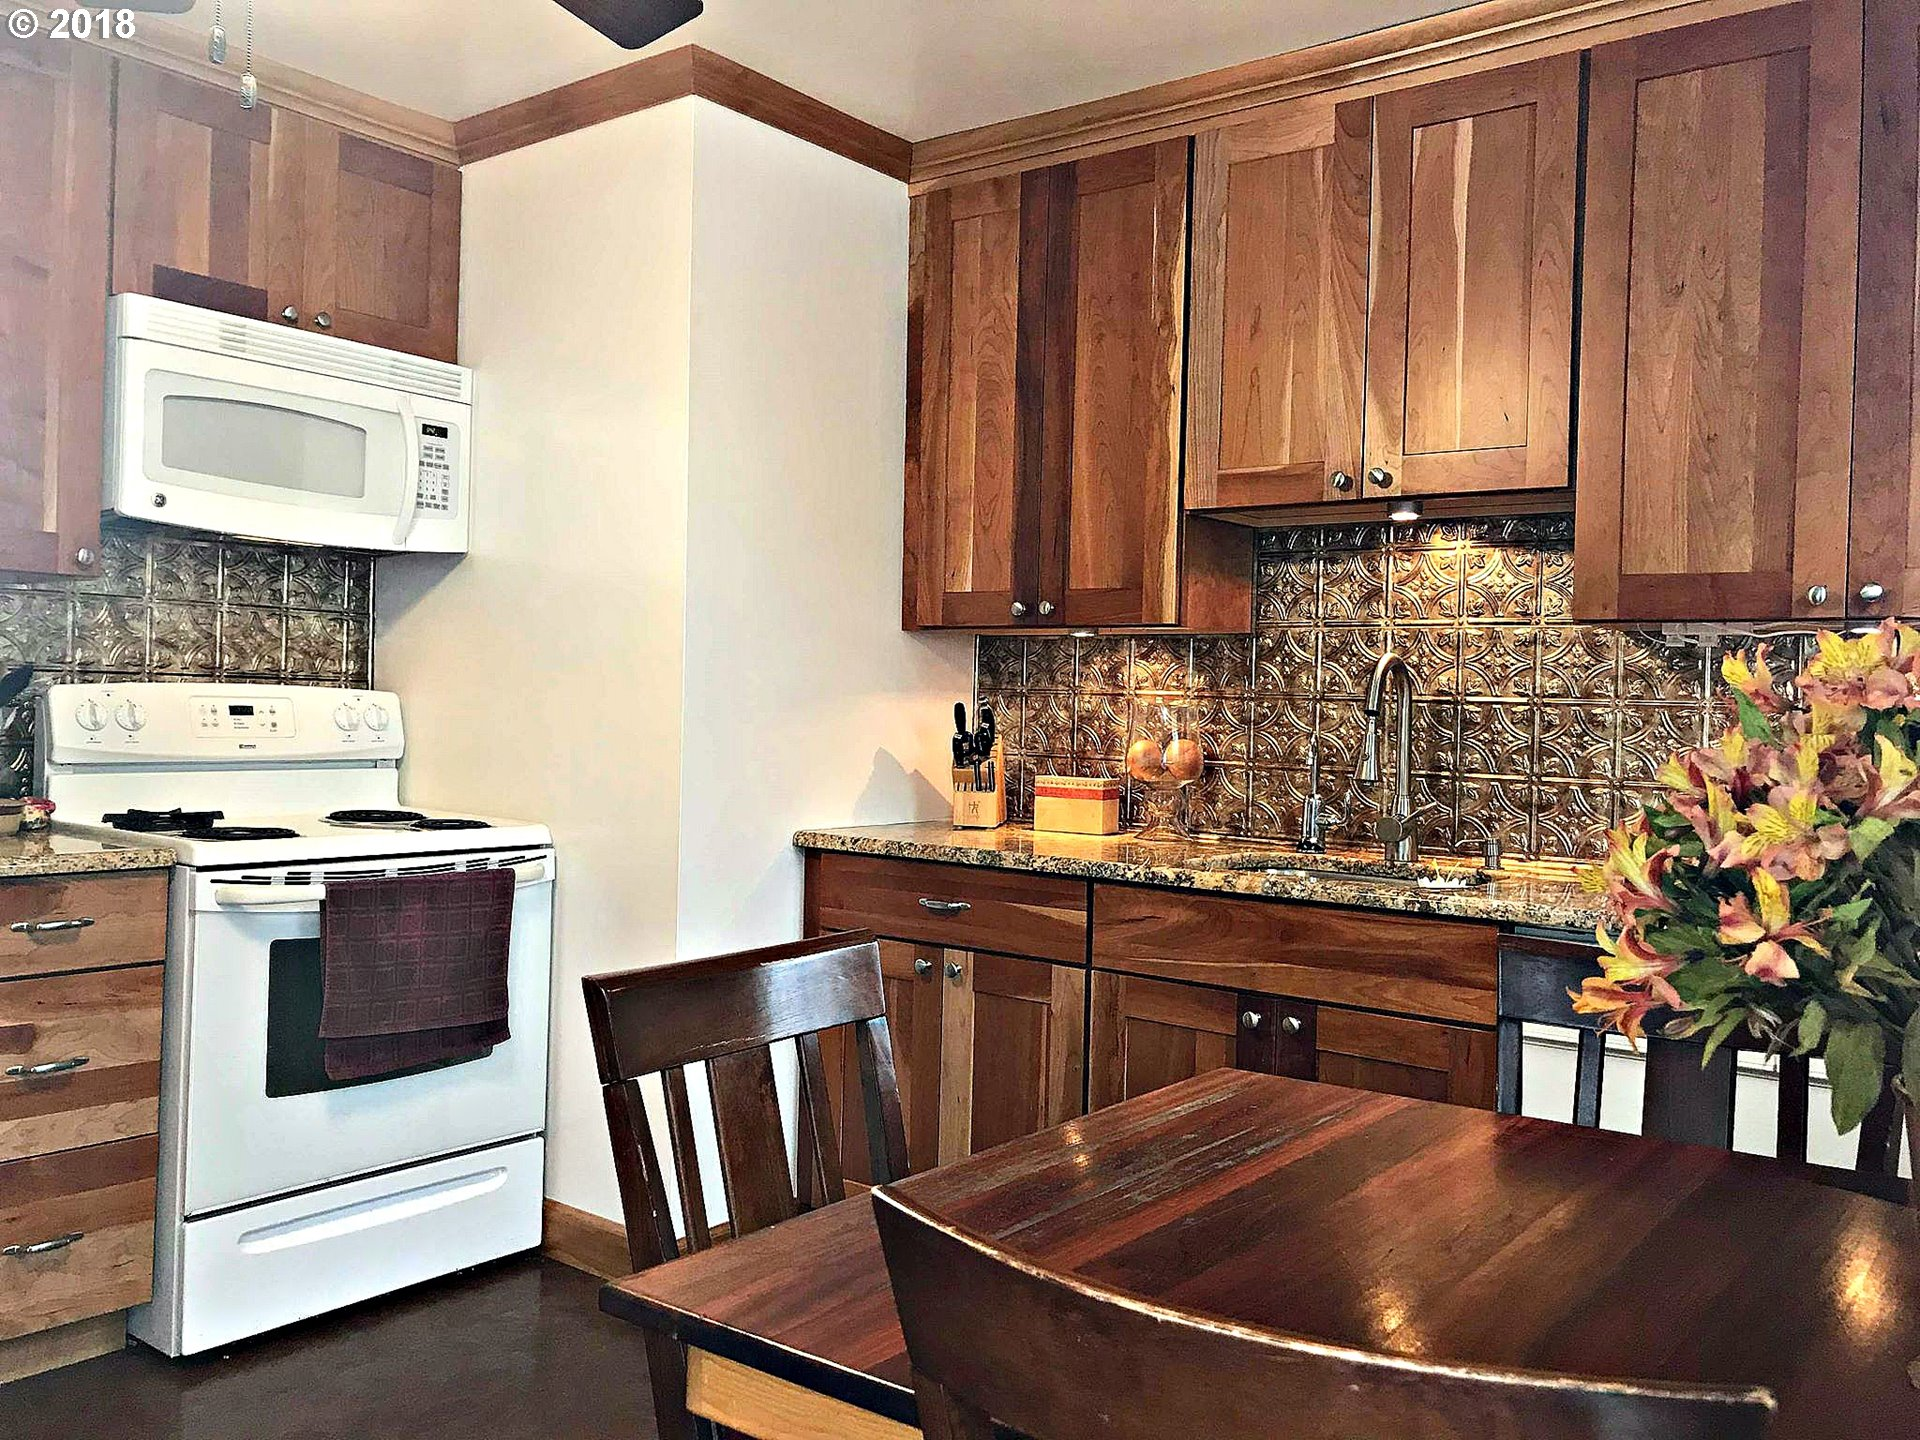 4912 SE 85TH AVE Portland, OR 97266 - MLS #: 18636653